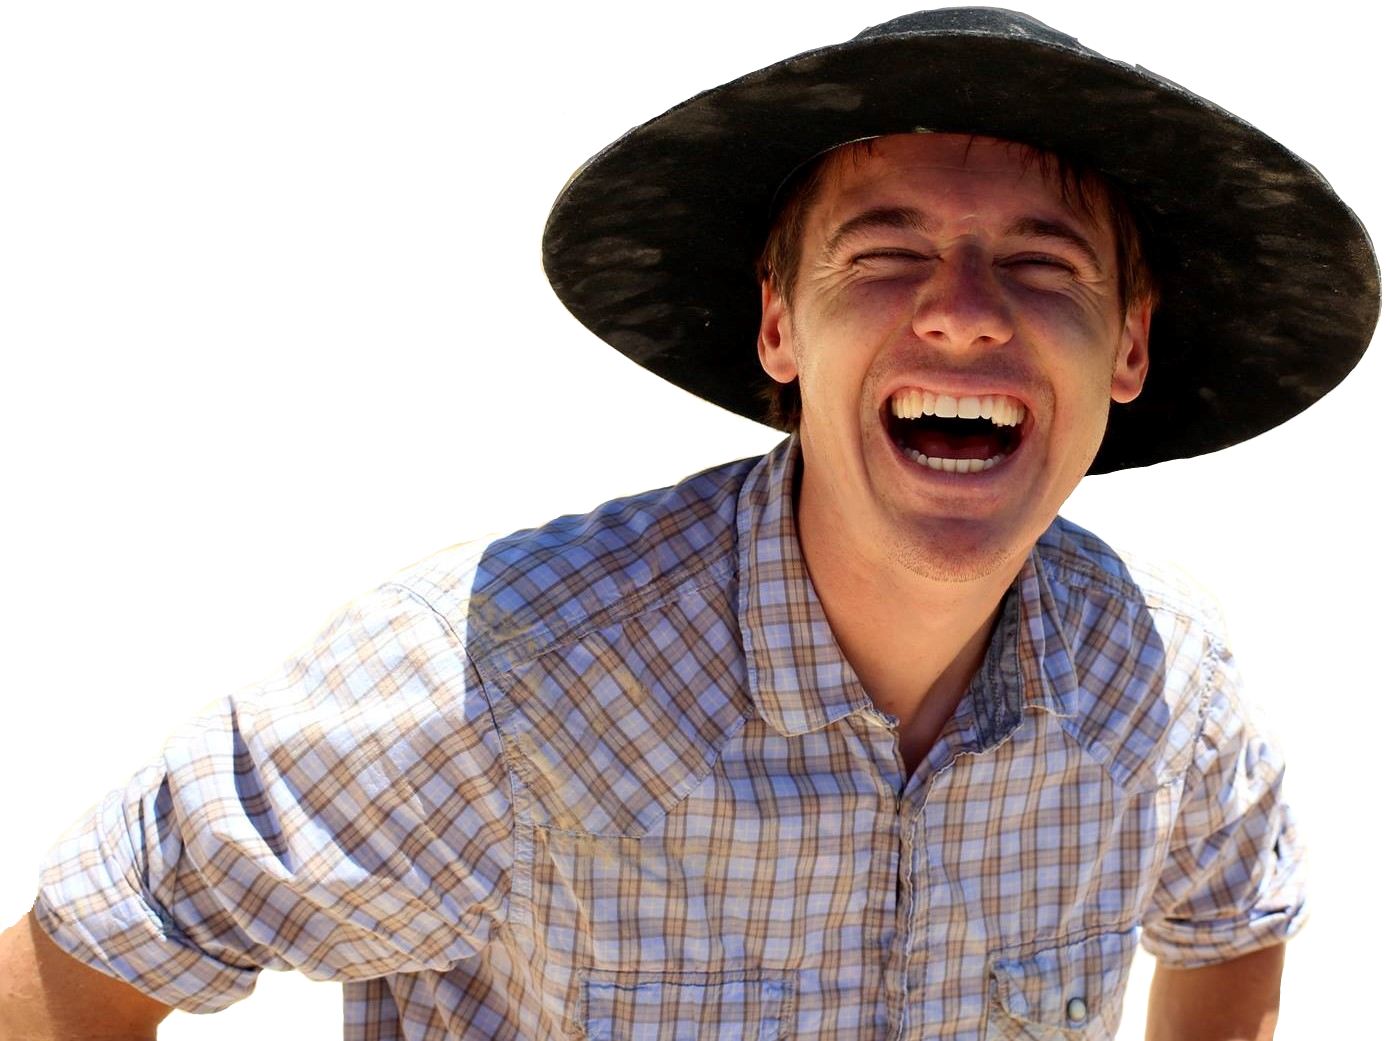 Tyler Smith wearing a black brimmed hat